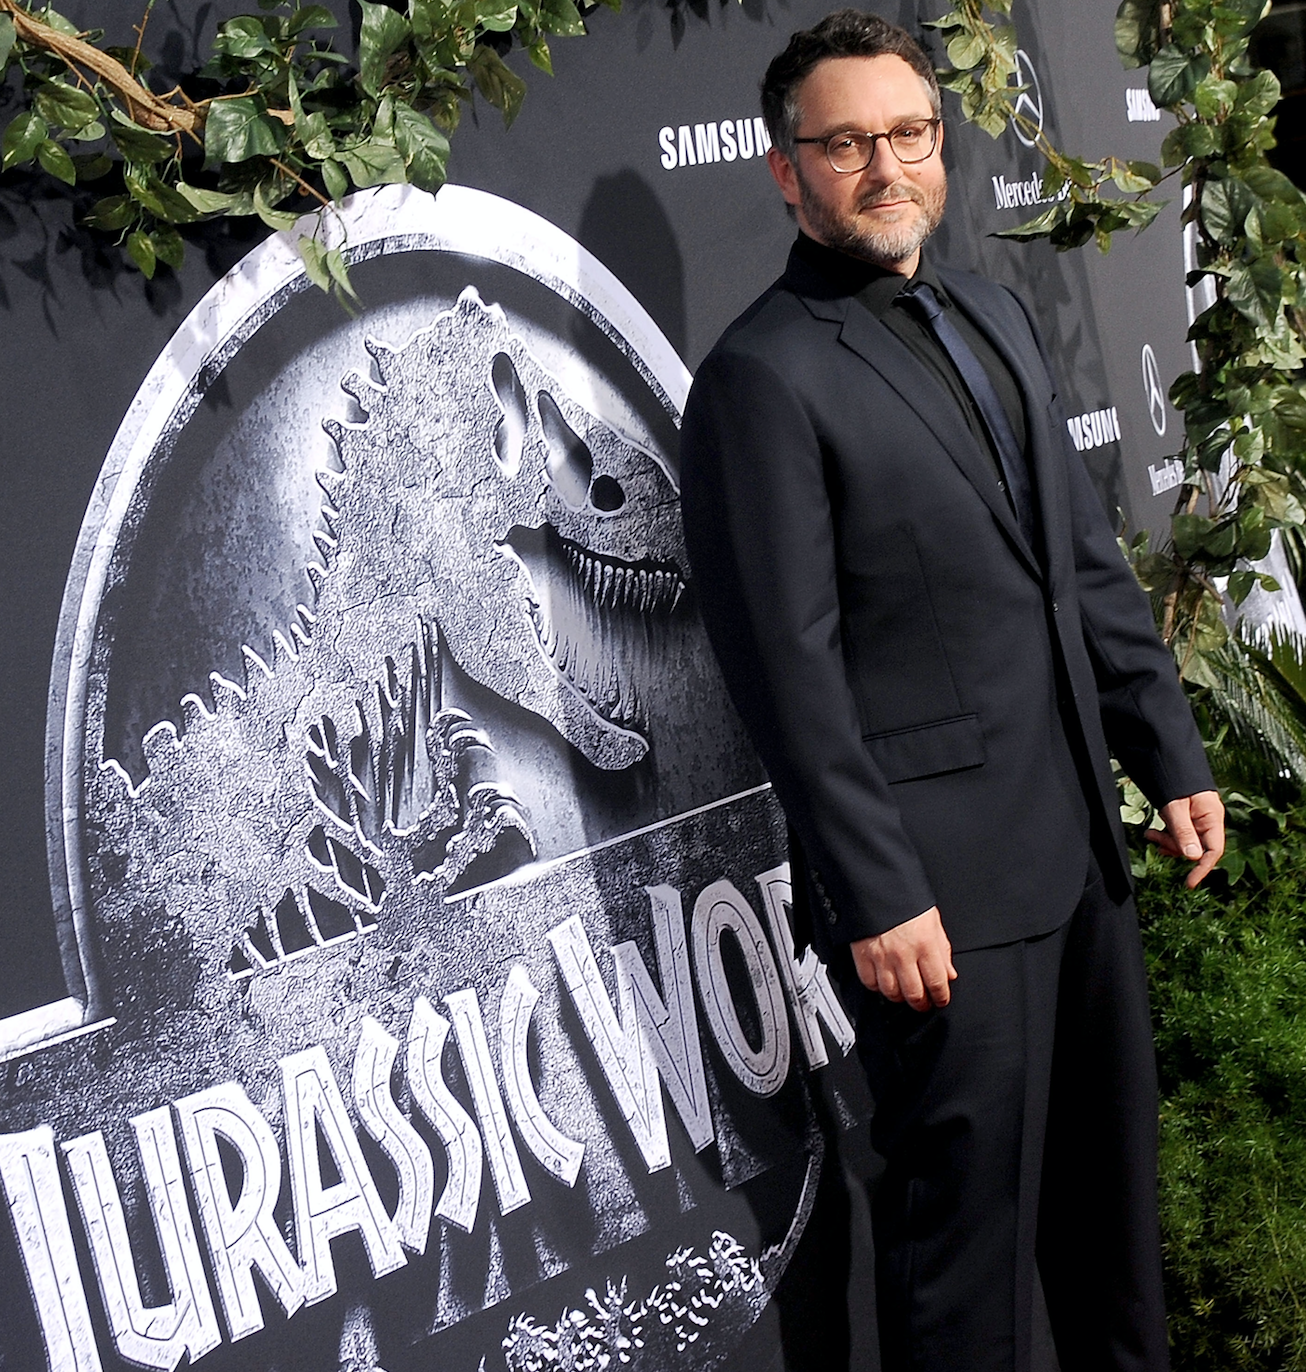 Jurassic World 3 is bringing back Colin Trevorrow as director, Steven Spielberg confirms